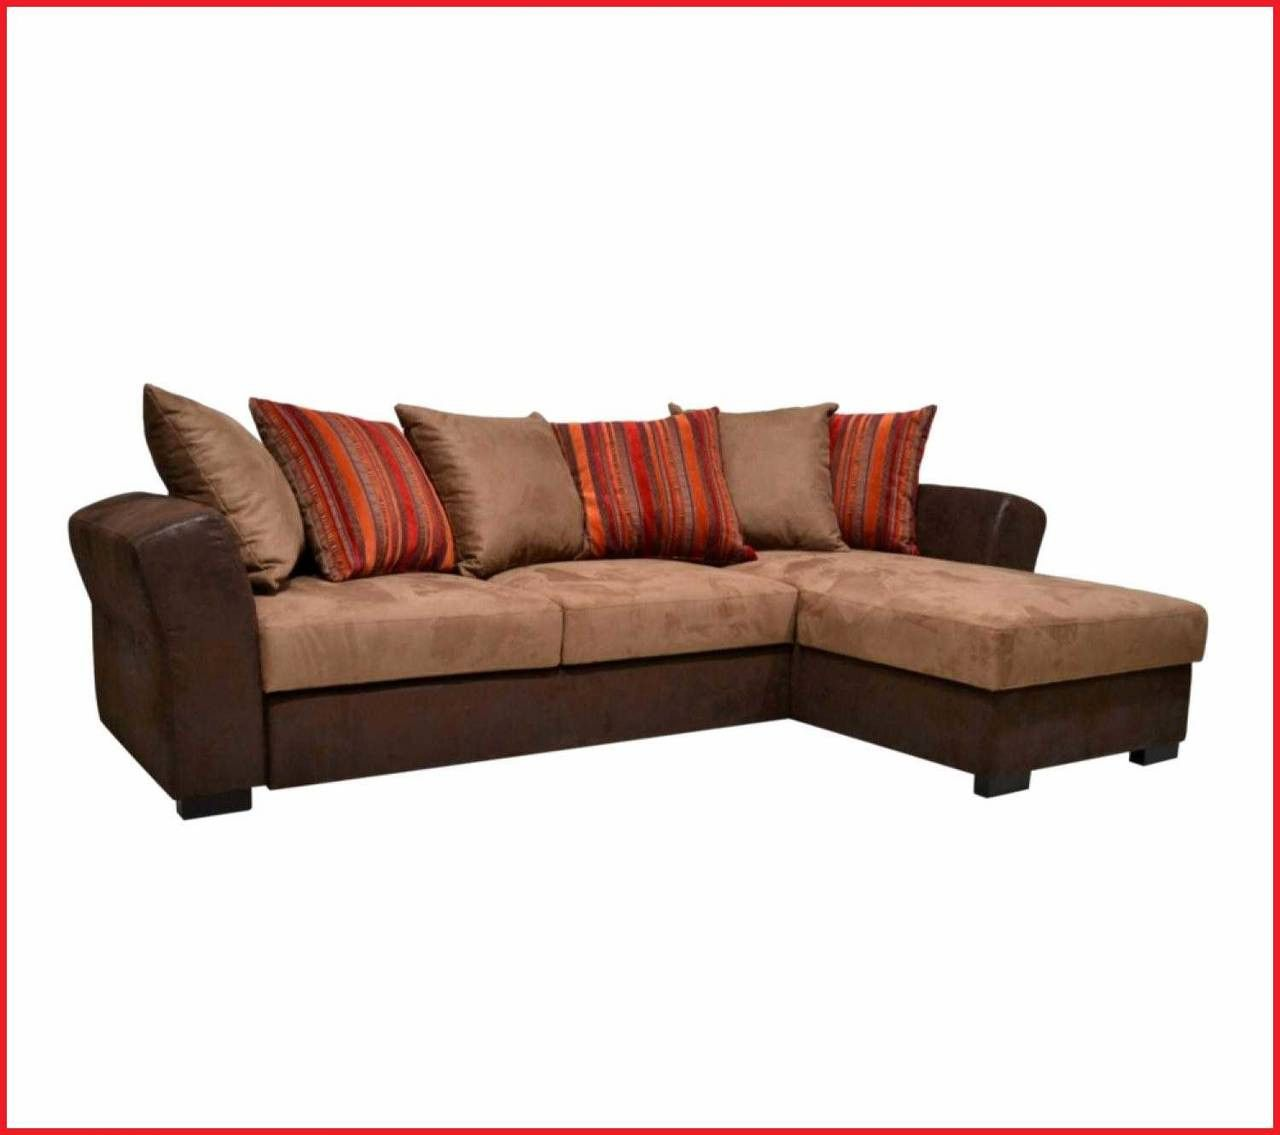 Awesome Canape Convertible Poltronesofa Prix Sectional Couch Home Decor Stairs Architecture